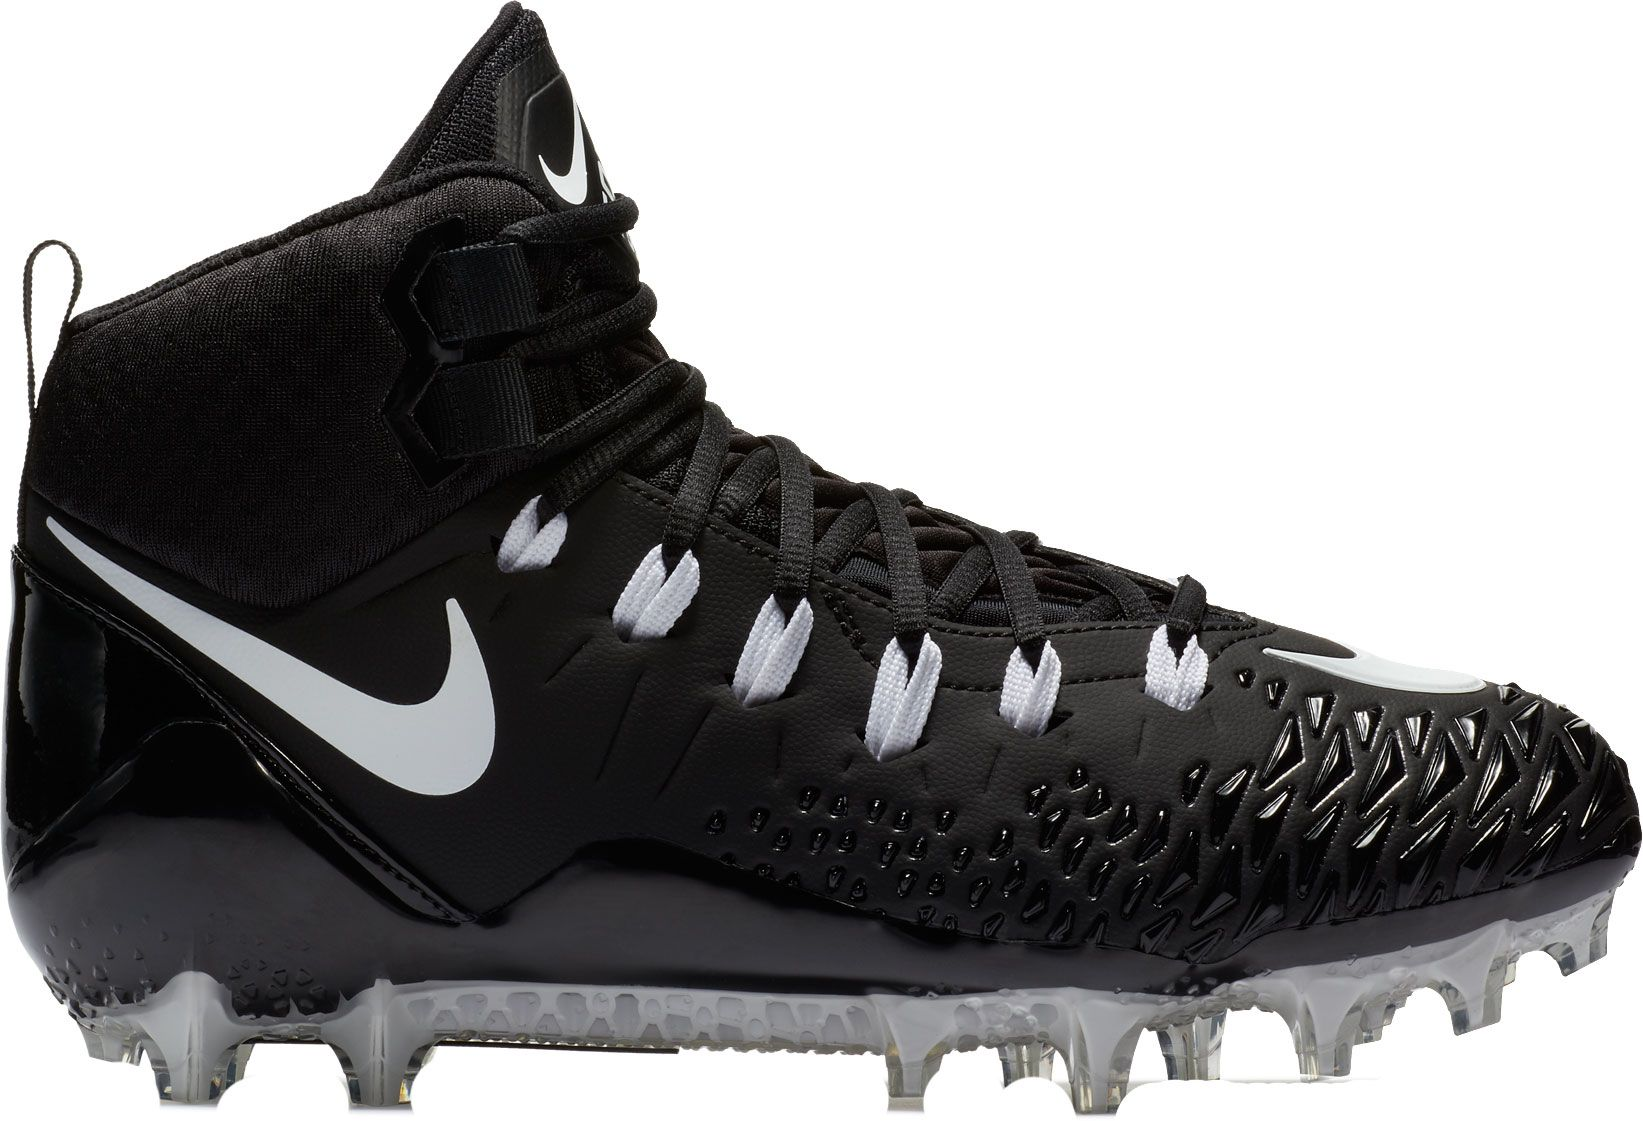 Nike Menu0027s Force Savage Pro Football Cleats - photo#38